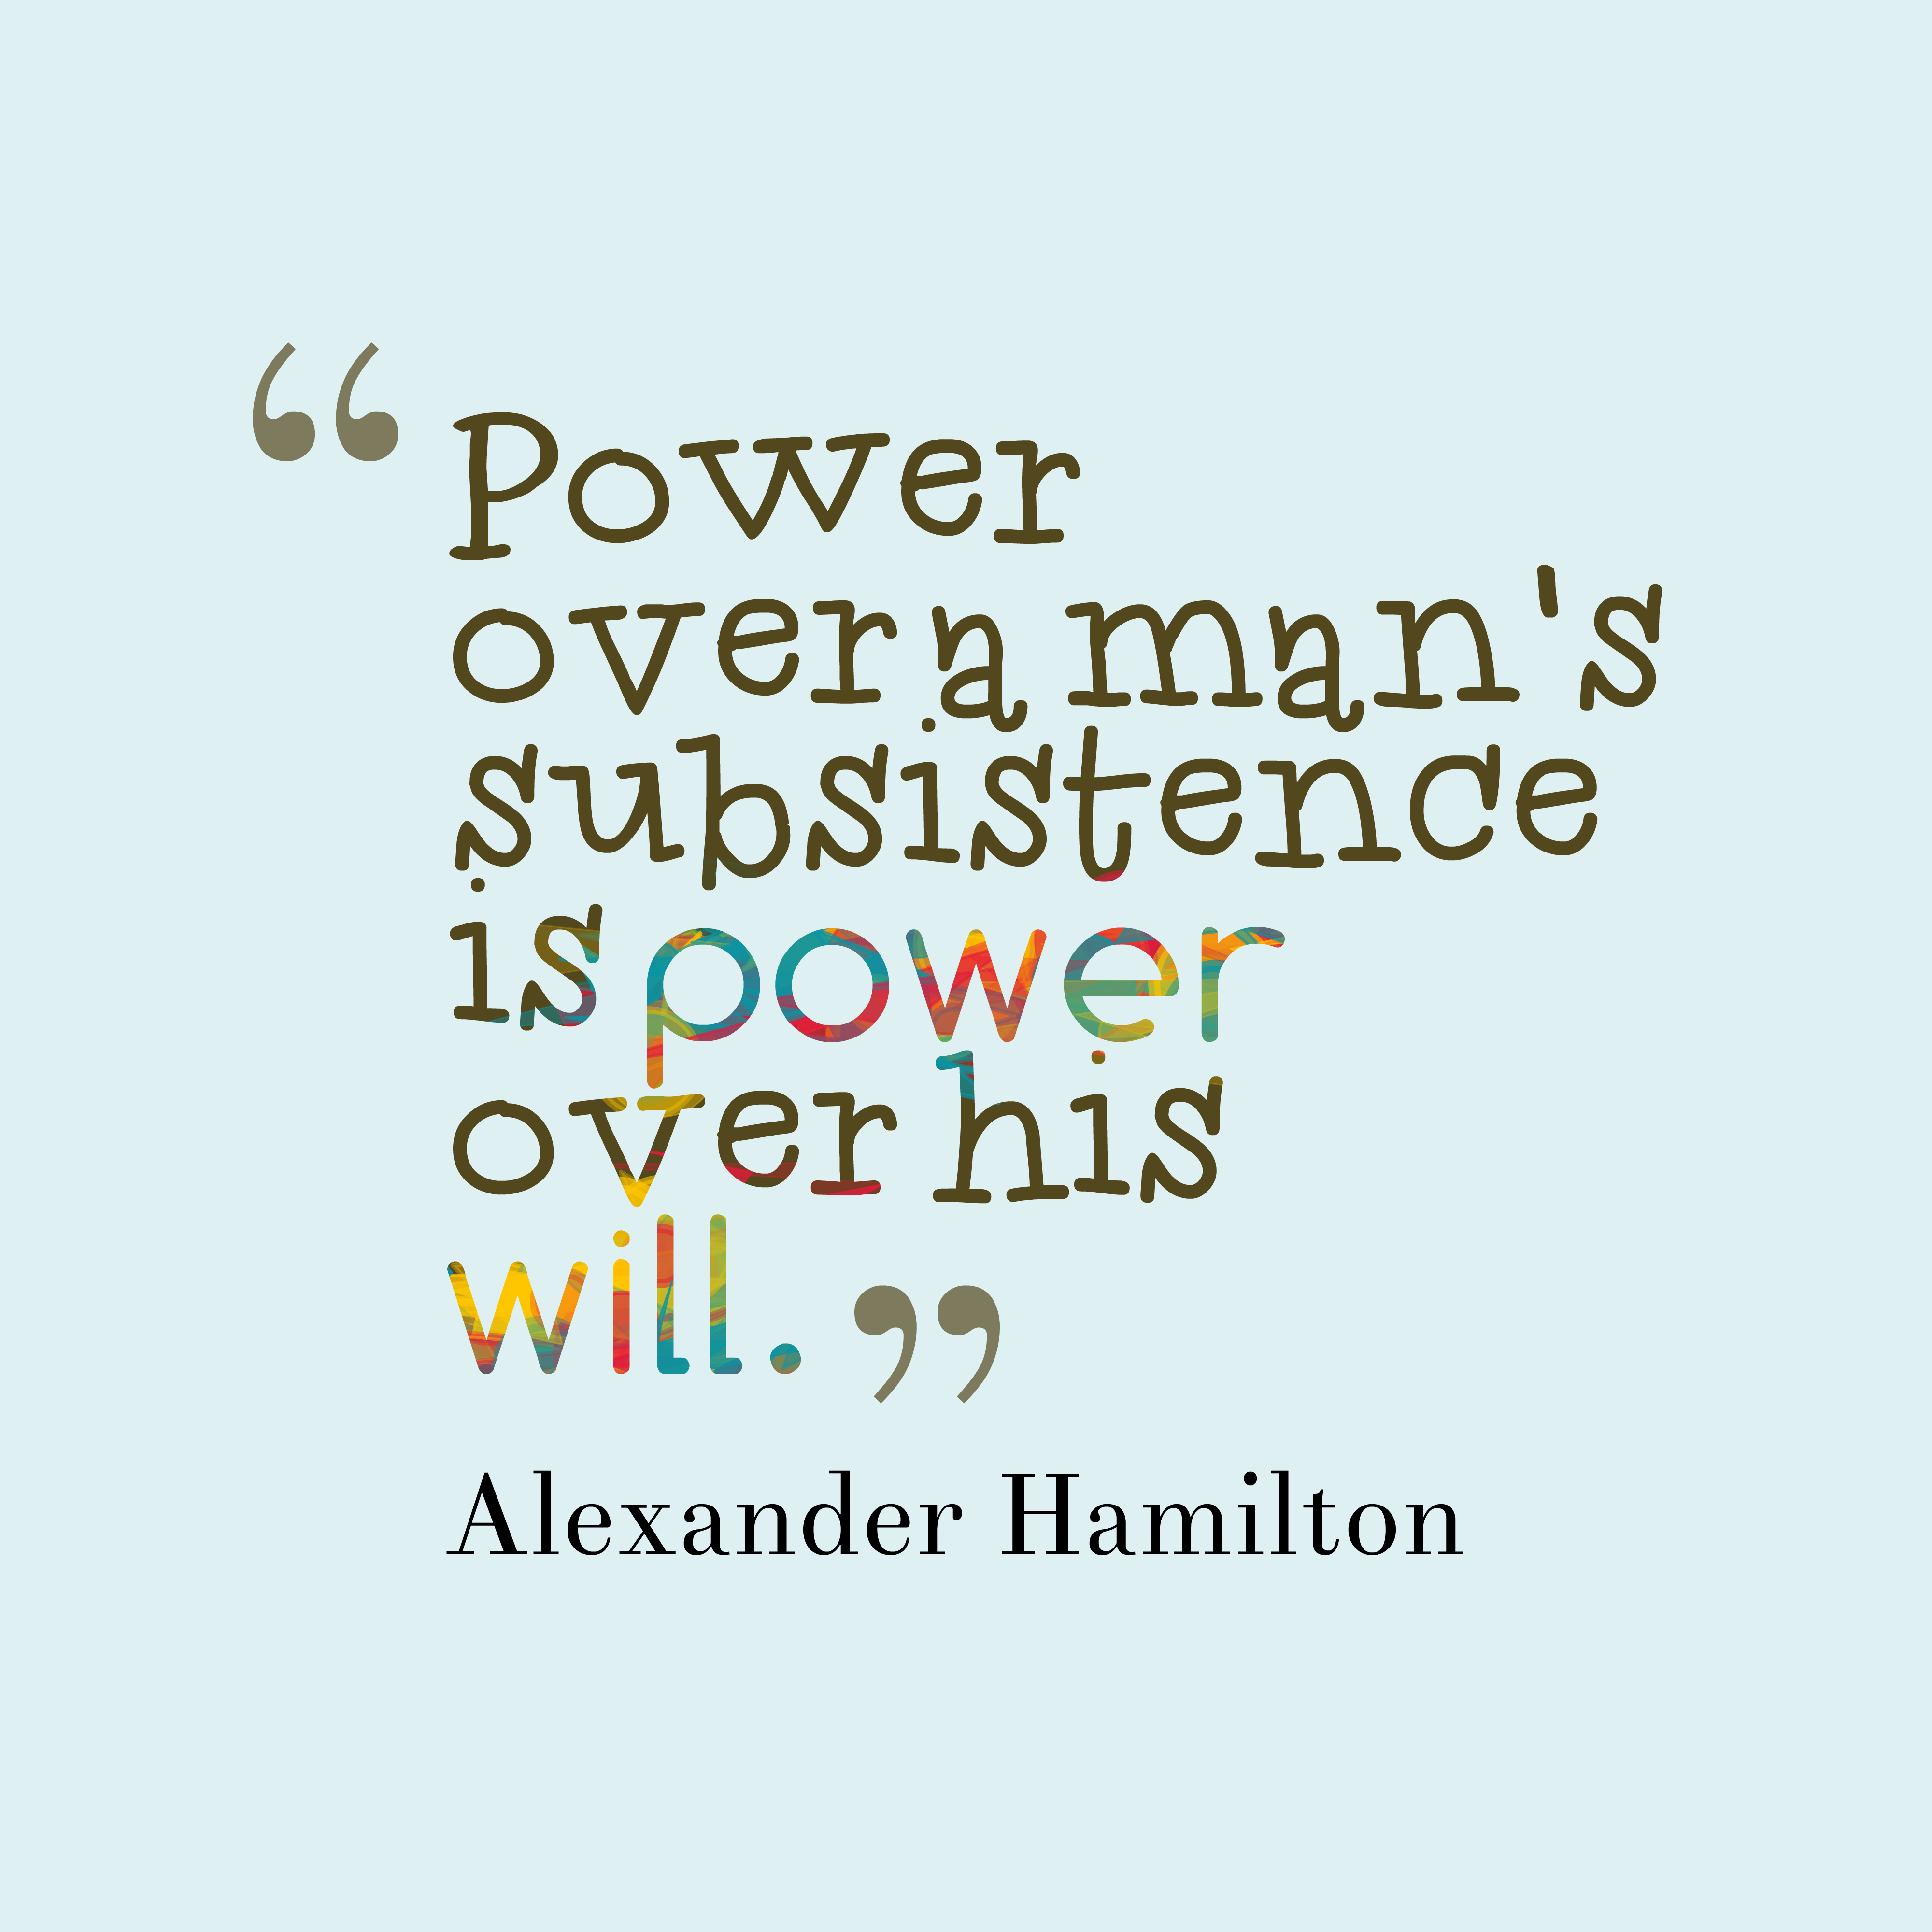 Picture Alexander Hamilton Quote About Power Quotescover Com